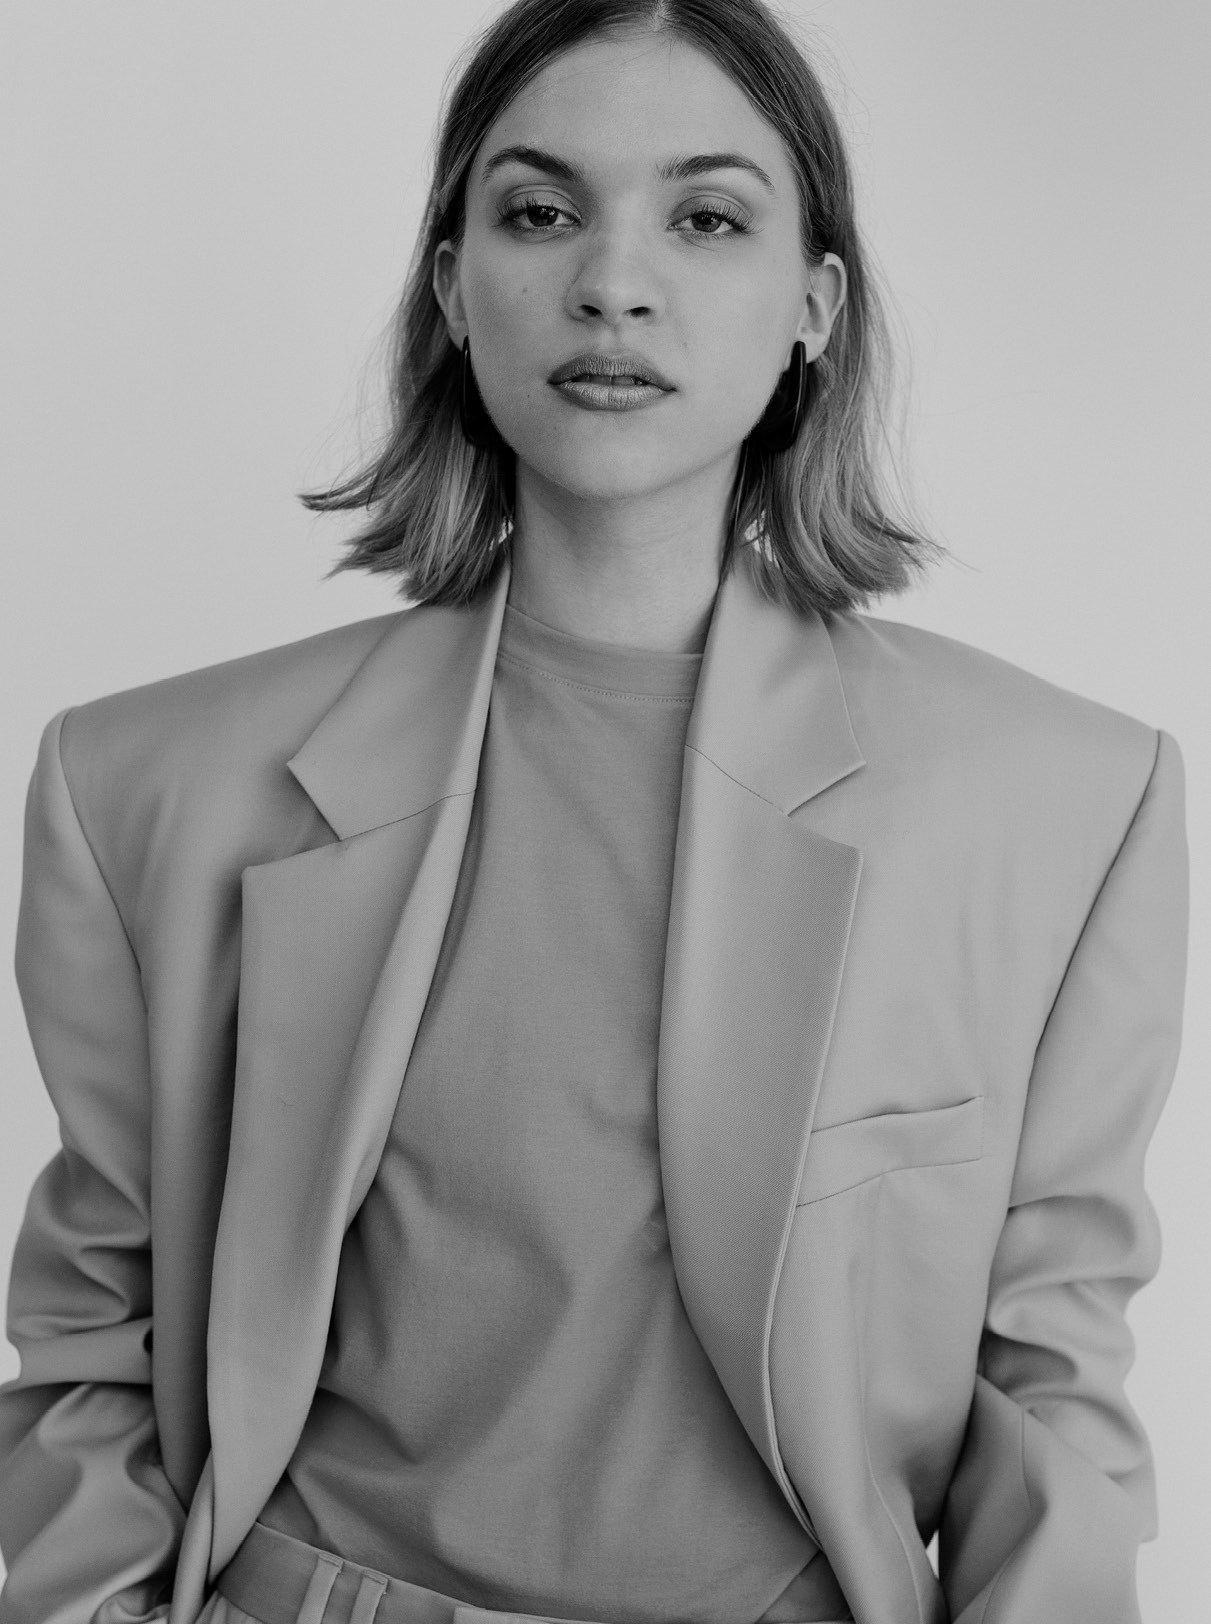 Tove Styrke (Credit: Luc Coiffait)